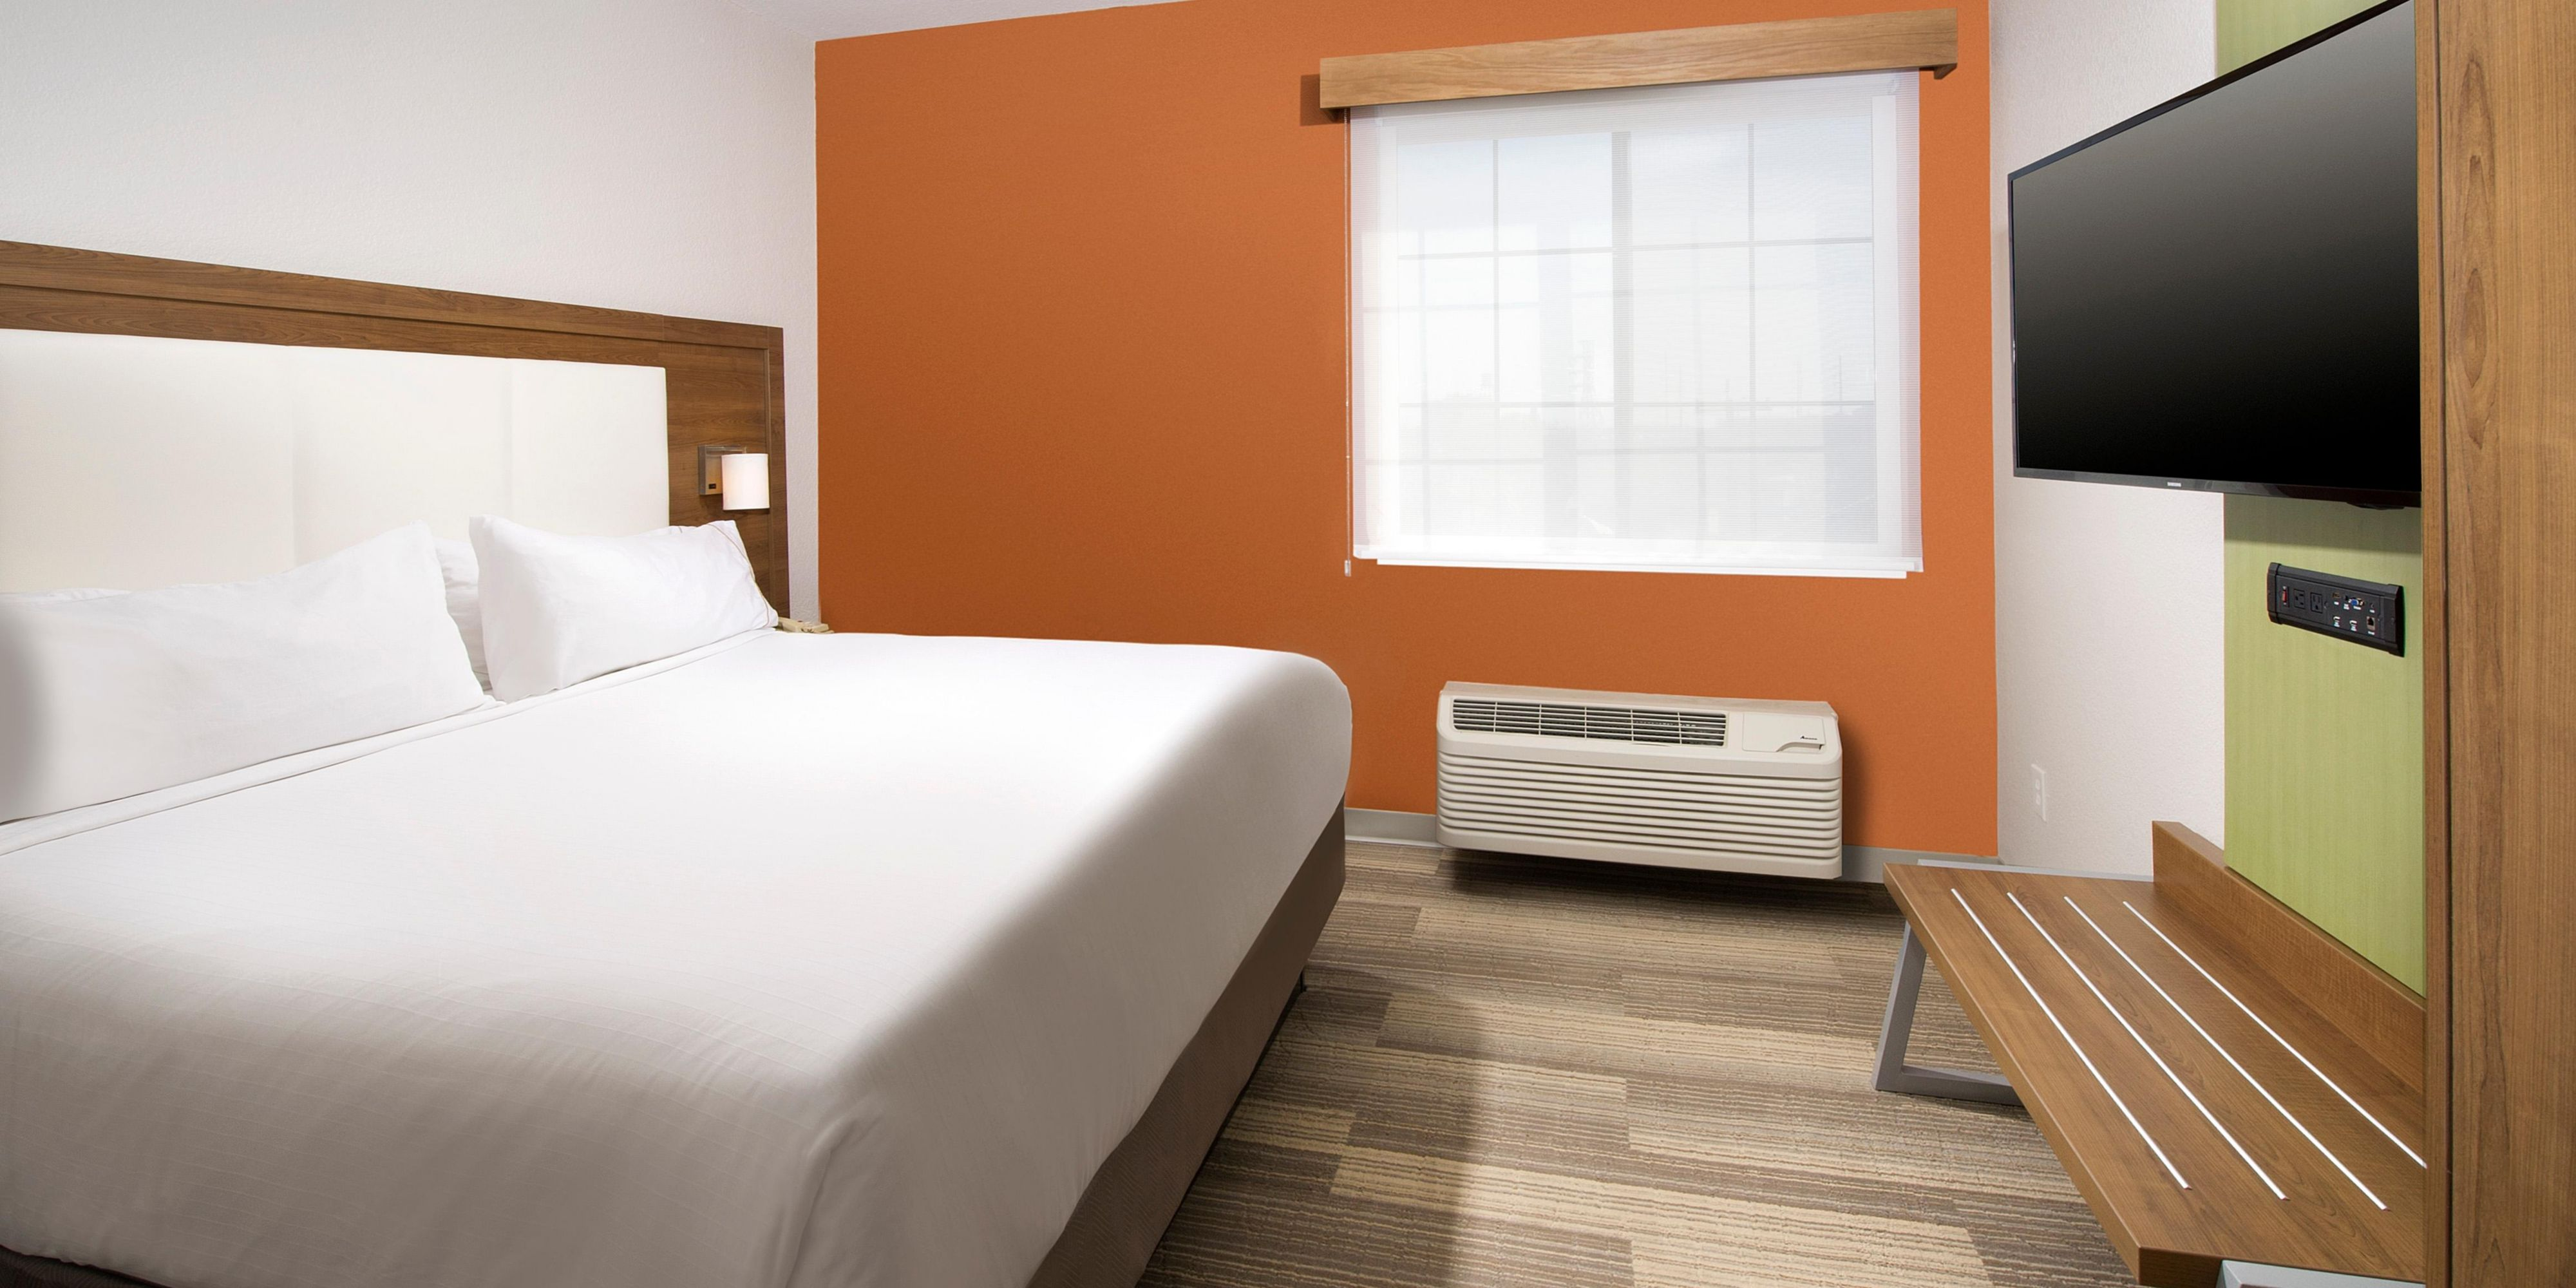 holiday inn express & suites san antonio-dtwn market area hotelihg